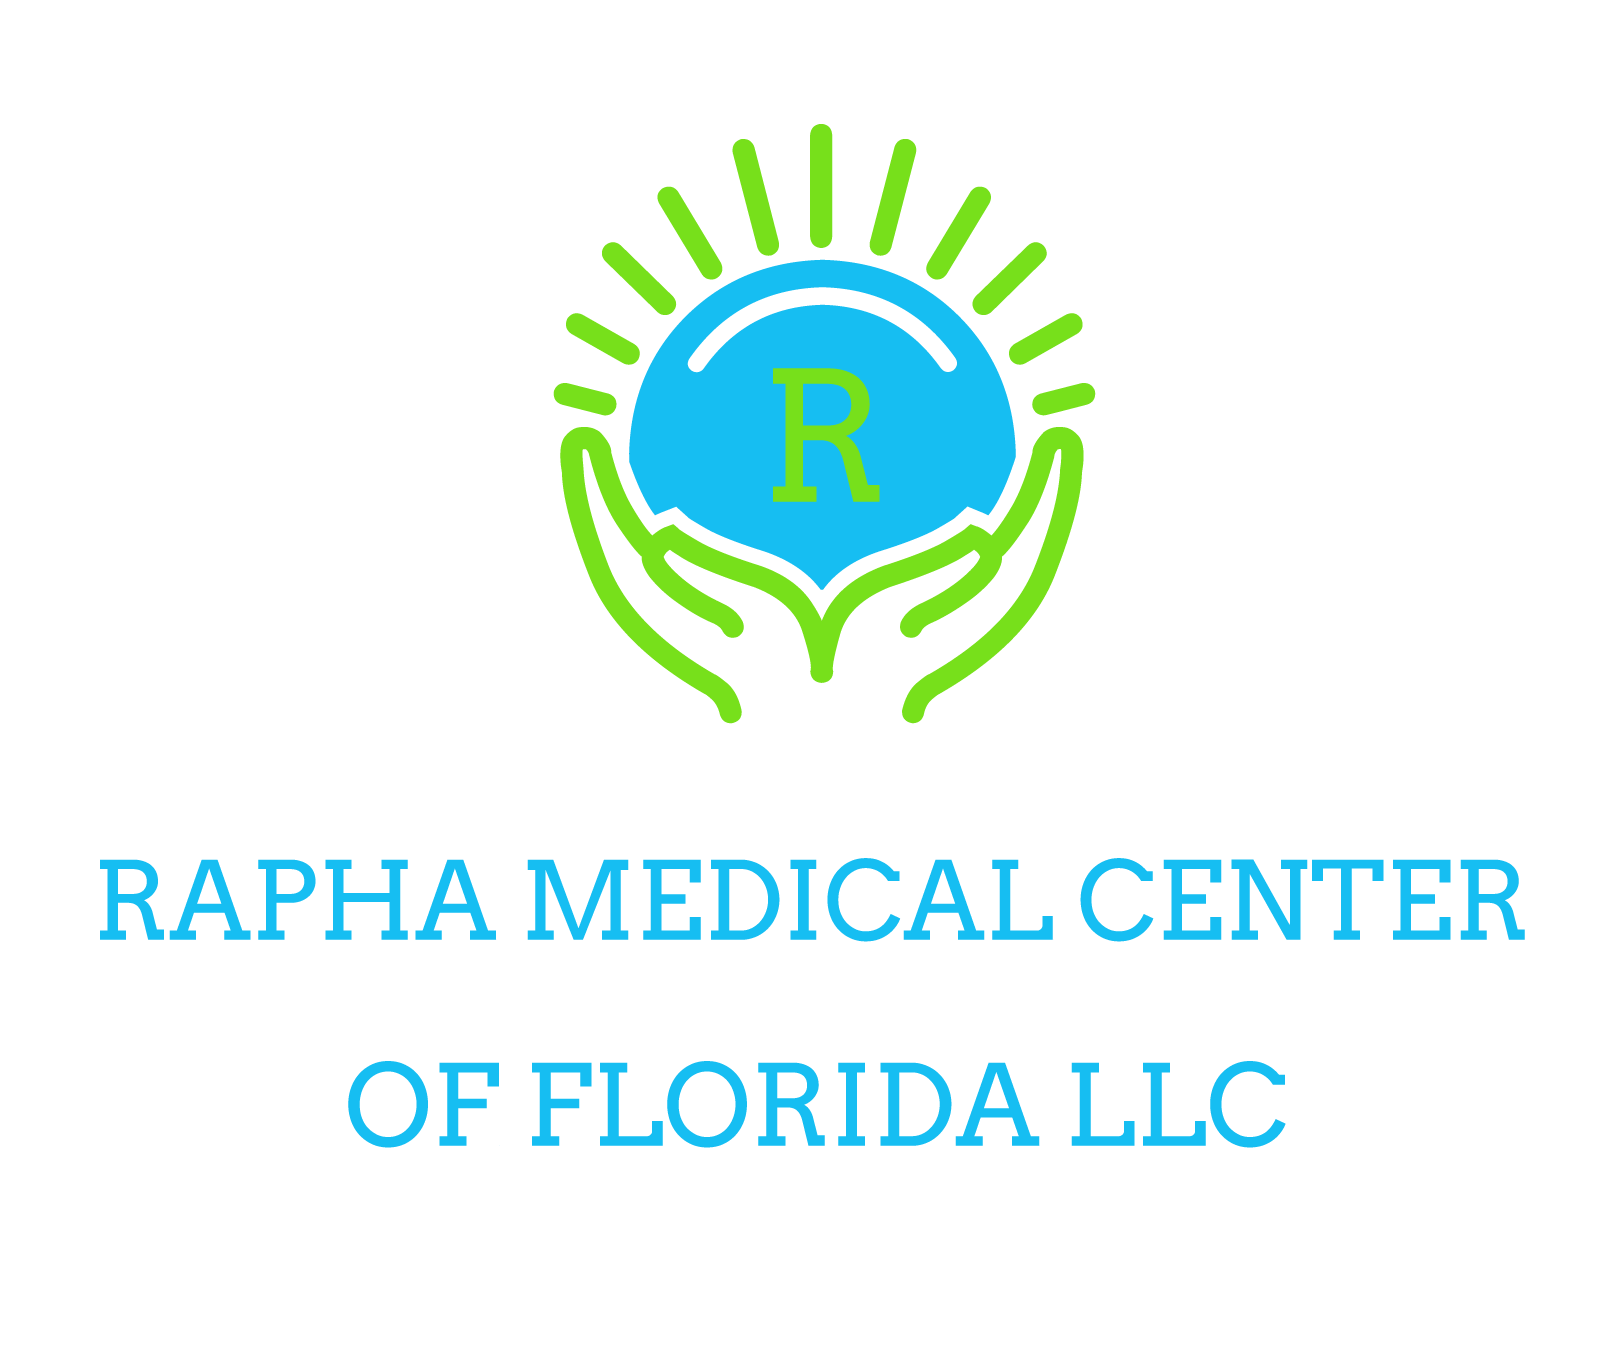 Rapha Medical Center